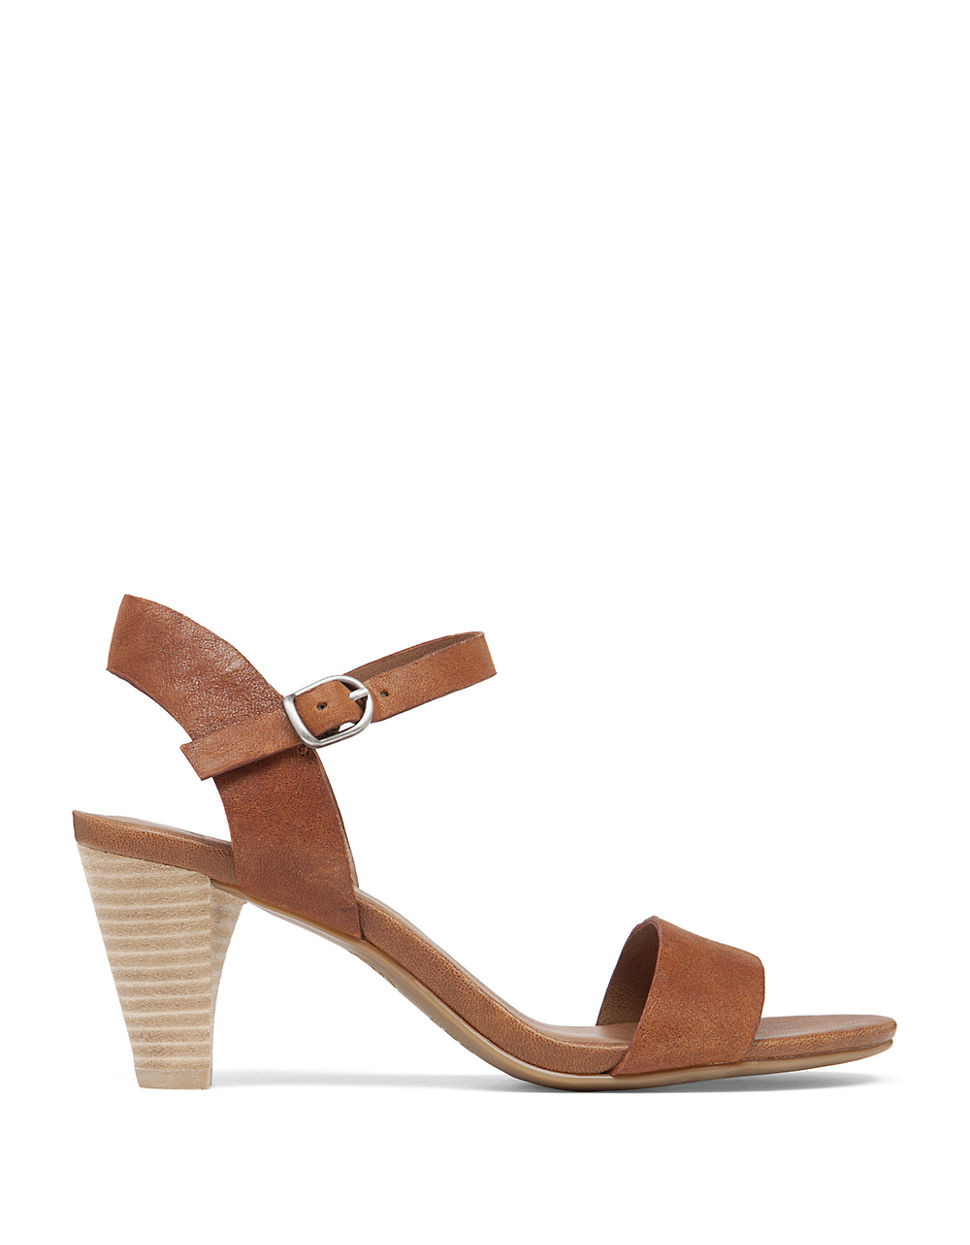 Lucky Brand Shoes Black Flats